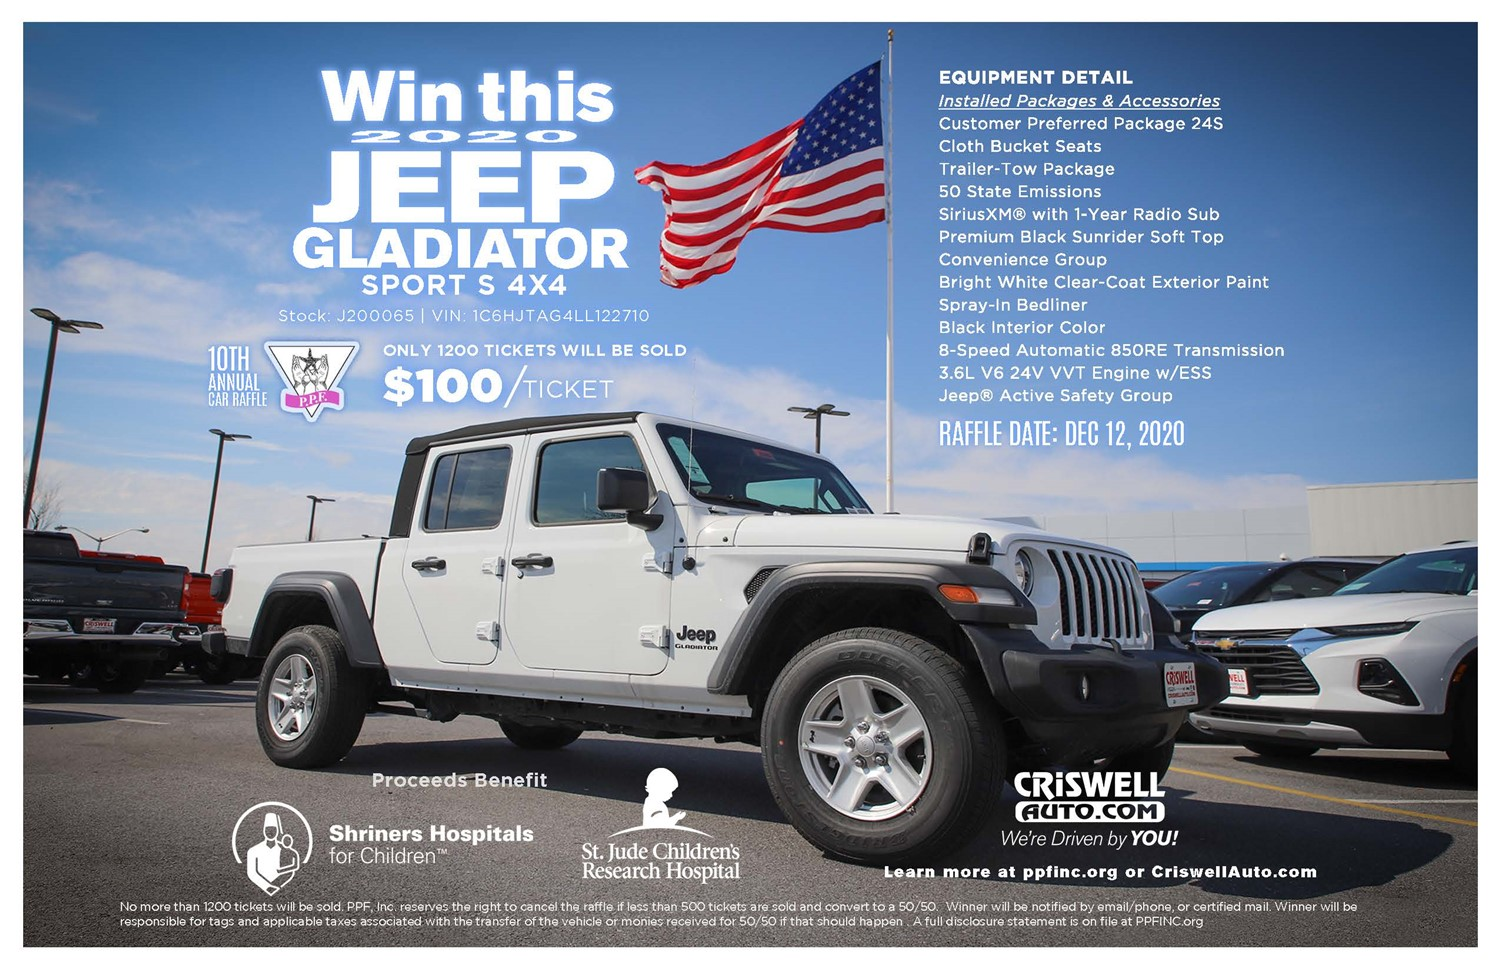 PPF, Inc 10th Annual CriswellAuto Jeep Gladiator Raffle Don't need to be present to WIN! on Dec 12, 14:00@99.9 WFRE Radio Station - Buy tickets and Get information on Patty Pollatos Fund